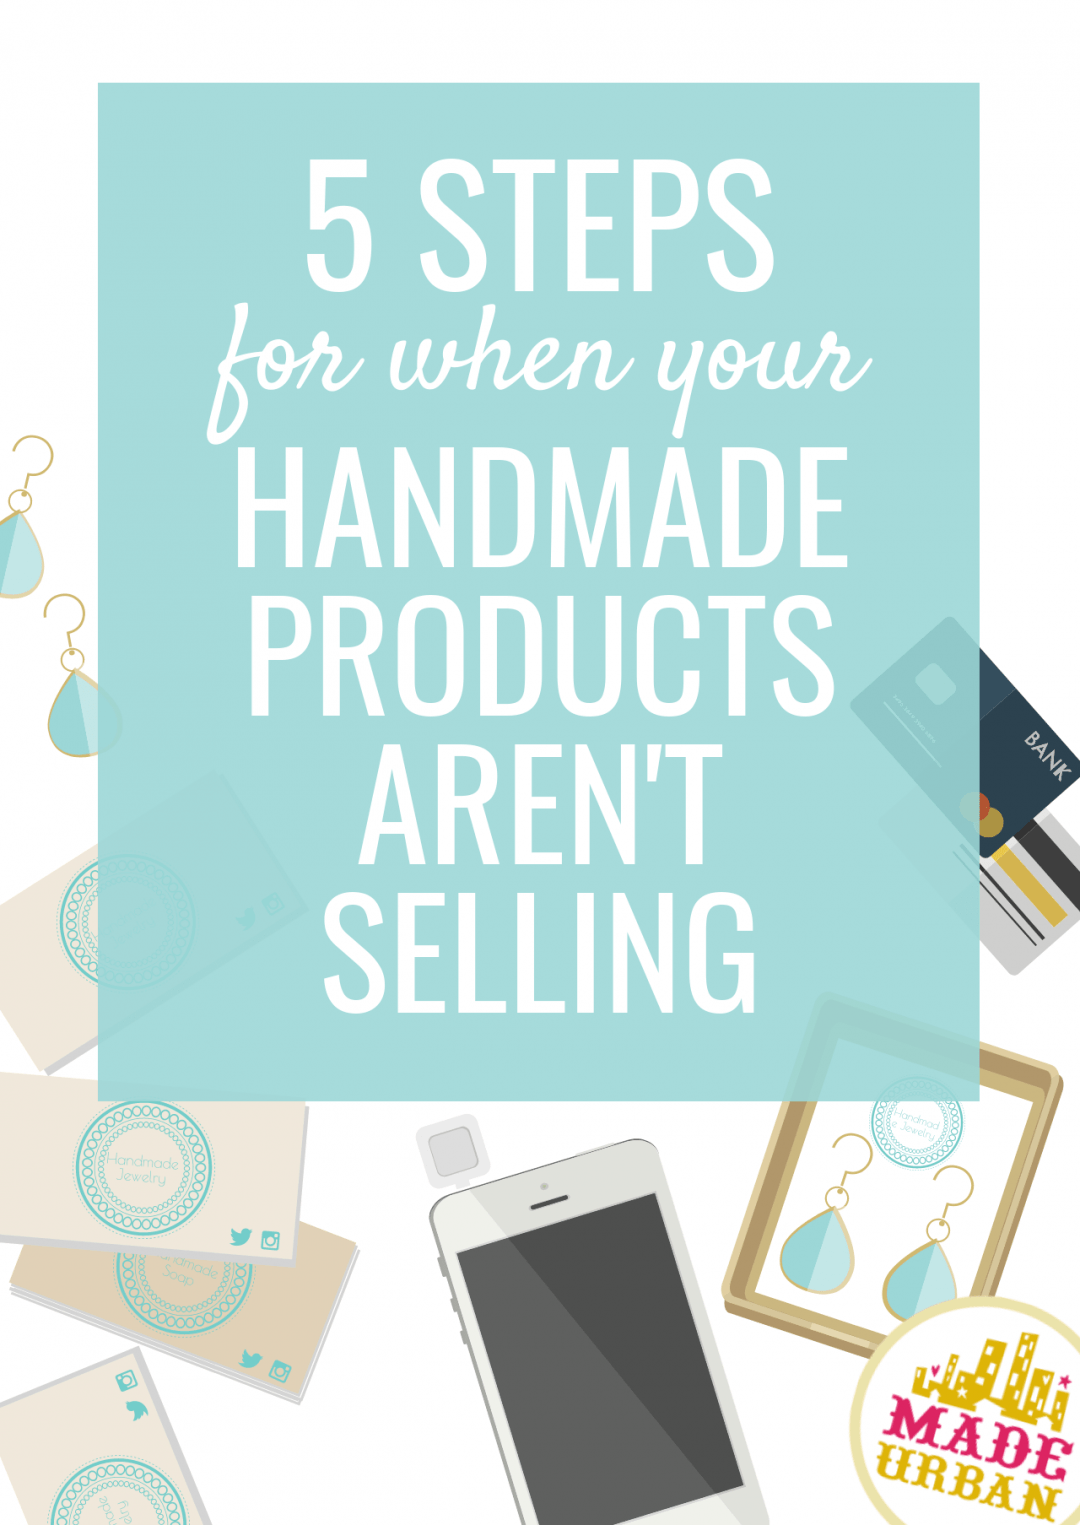 5 Steps for When your Handmade Products Aren't Selling